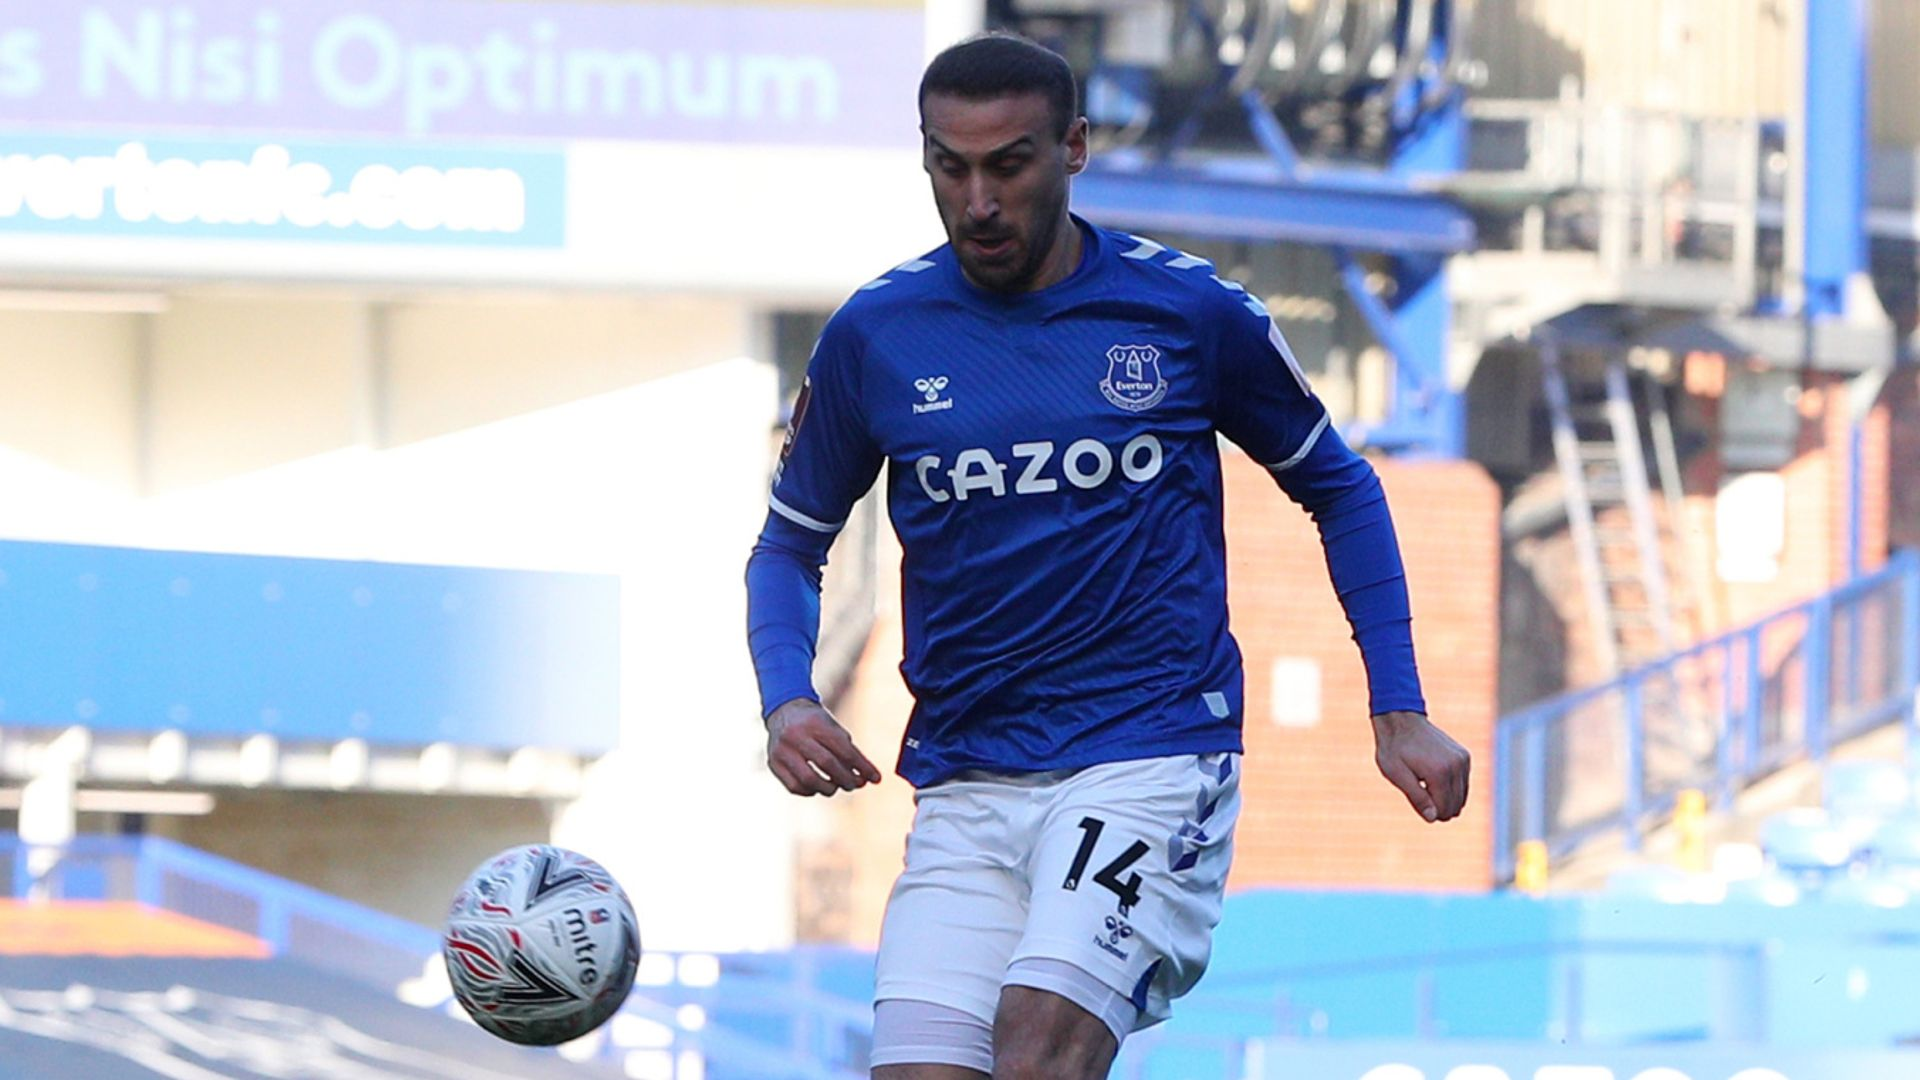 FA Cup R3: Everton lead early vs Rotherham LIVE!